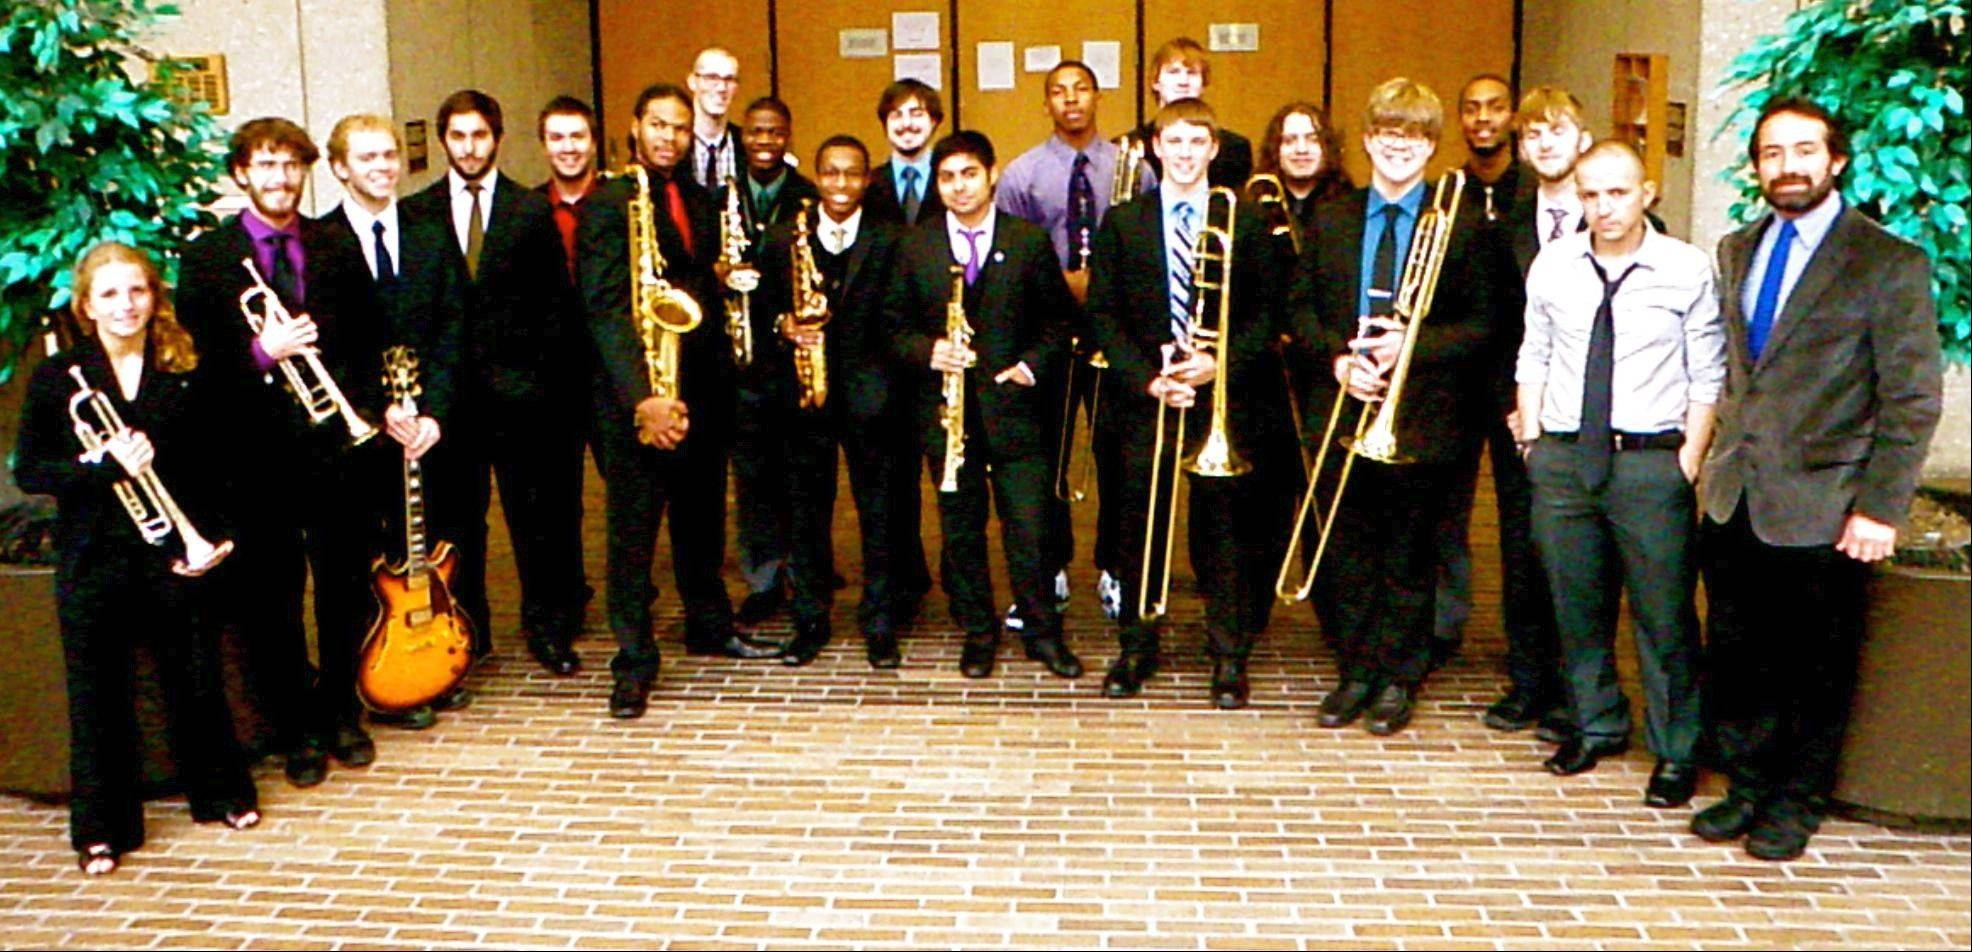 The Northern Illinois University Jazz Lab Band will perform its first concert of the season on Thursday, March 7.